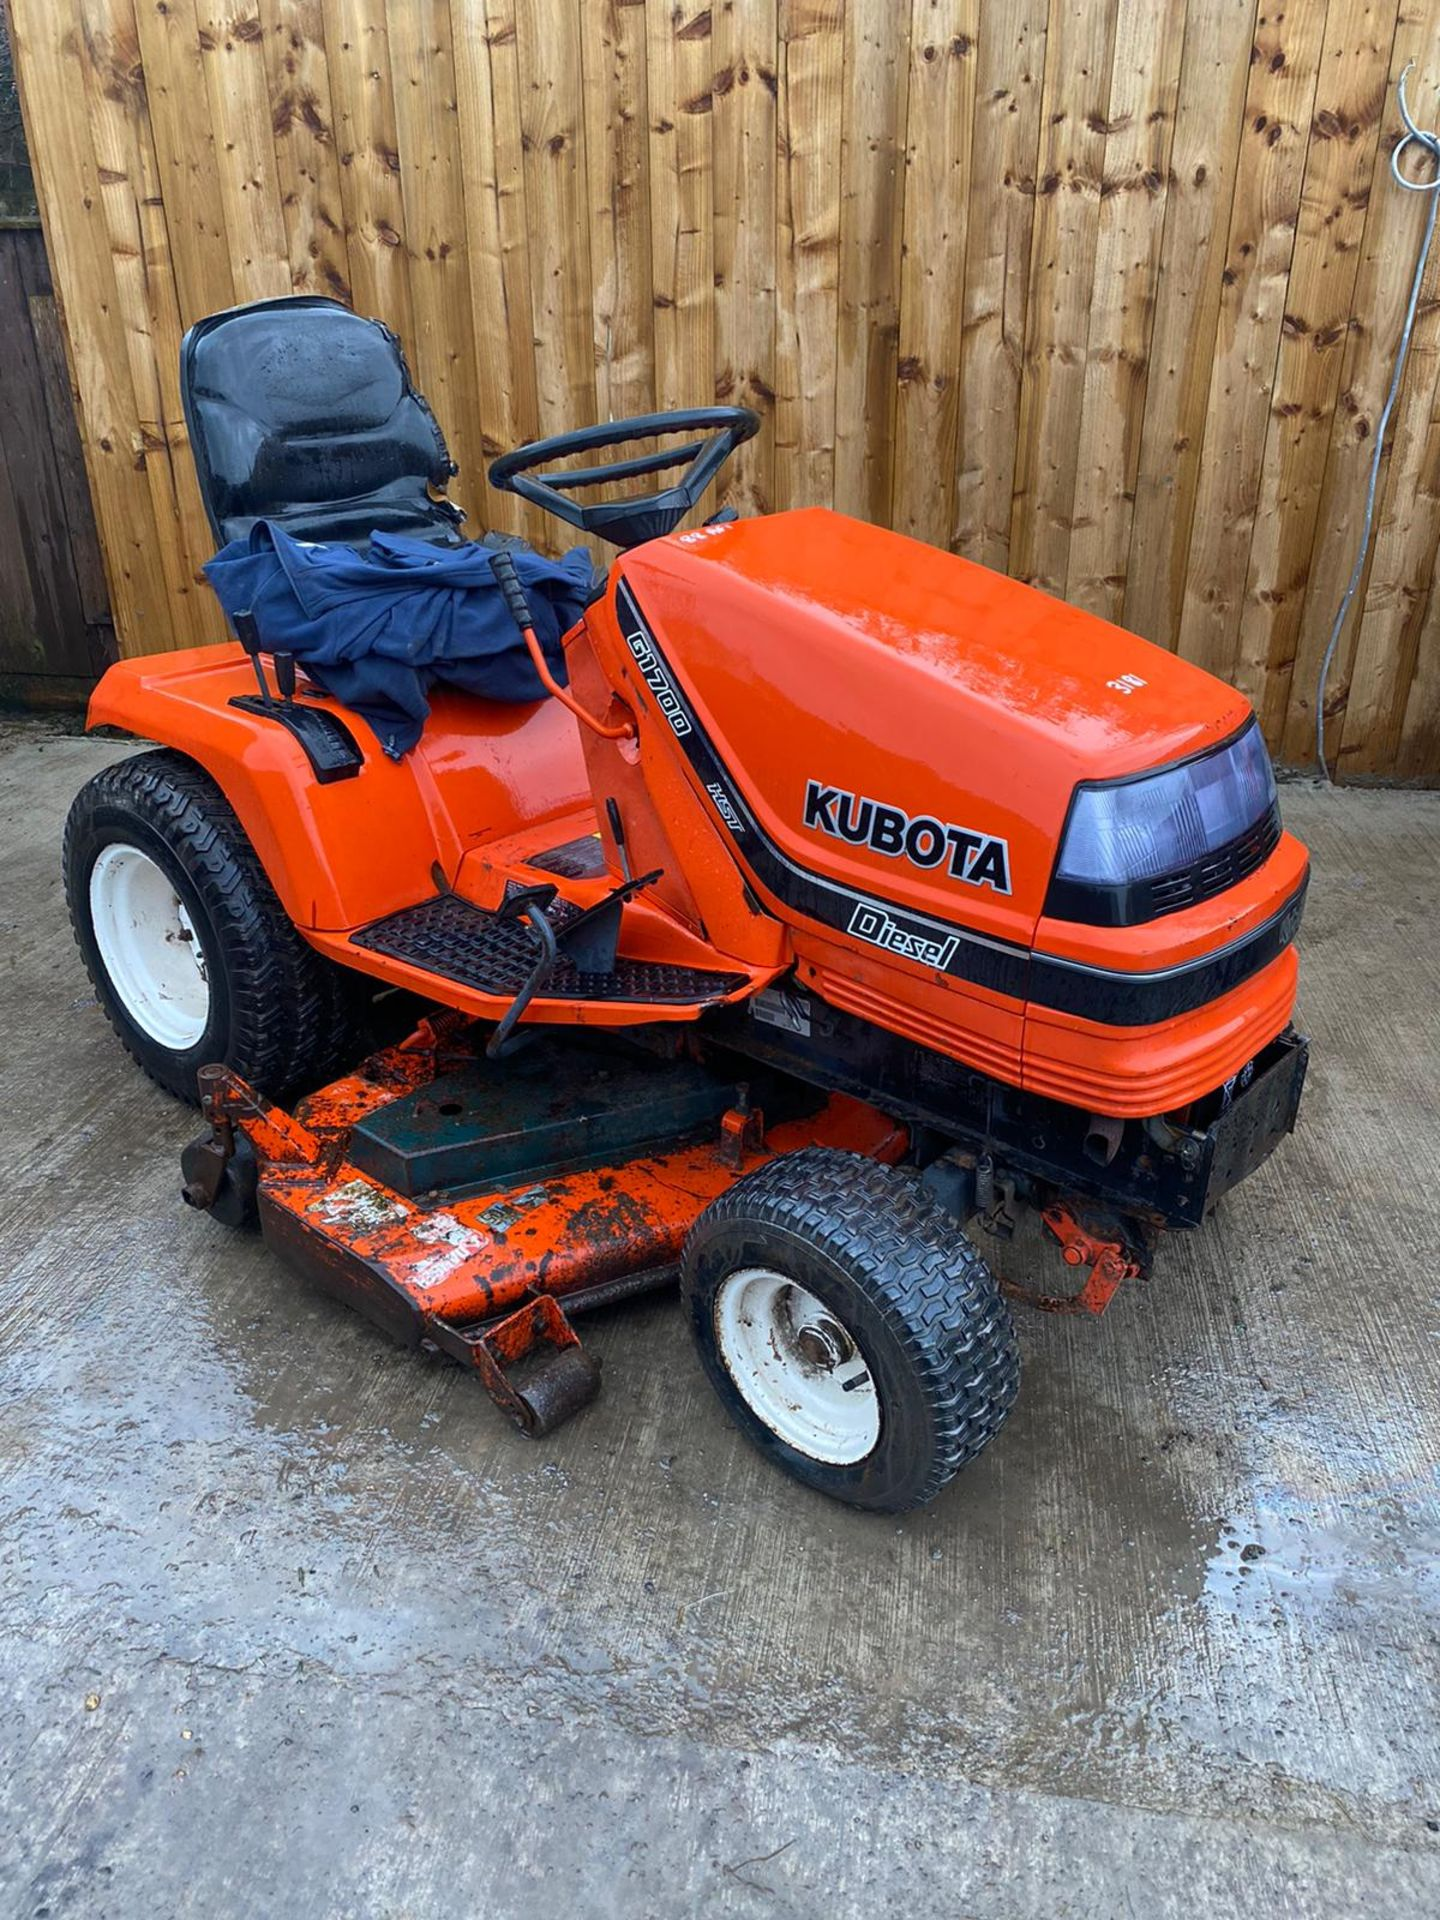 KUBOTA G1700 DIESEL RIDE ON MOWER, STARTS FIRST TIME, RUNS DRIVES AND CUTS VERY WELL *PLUS VAT* - Image 2 of 3